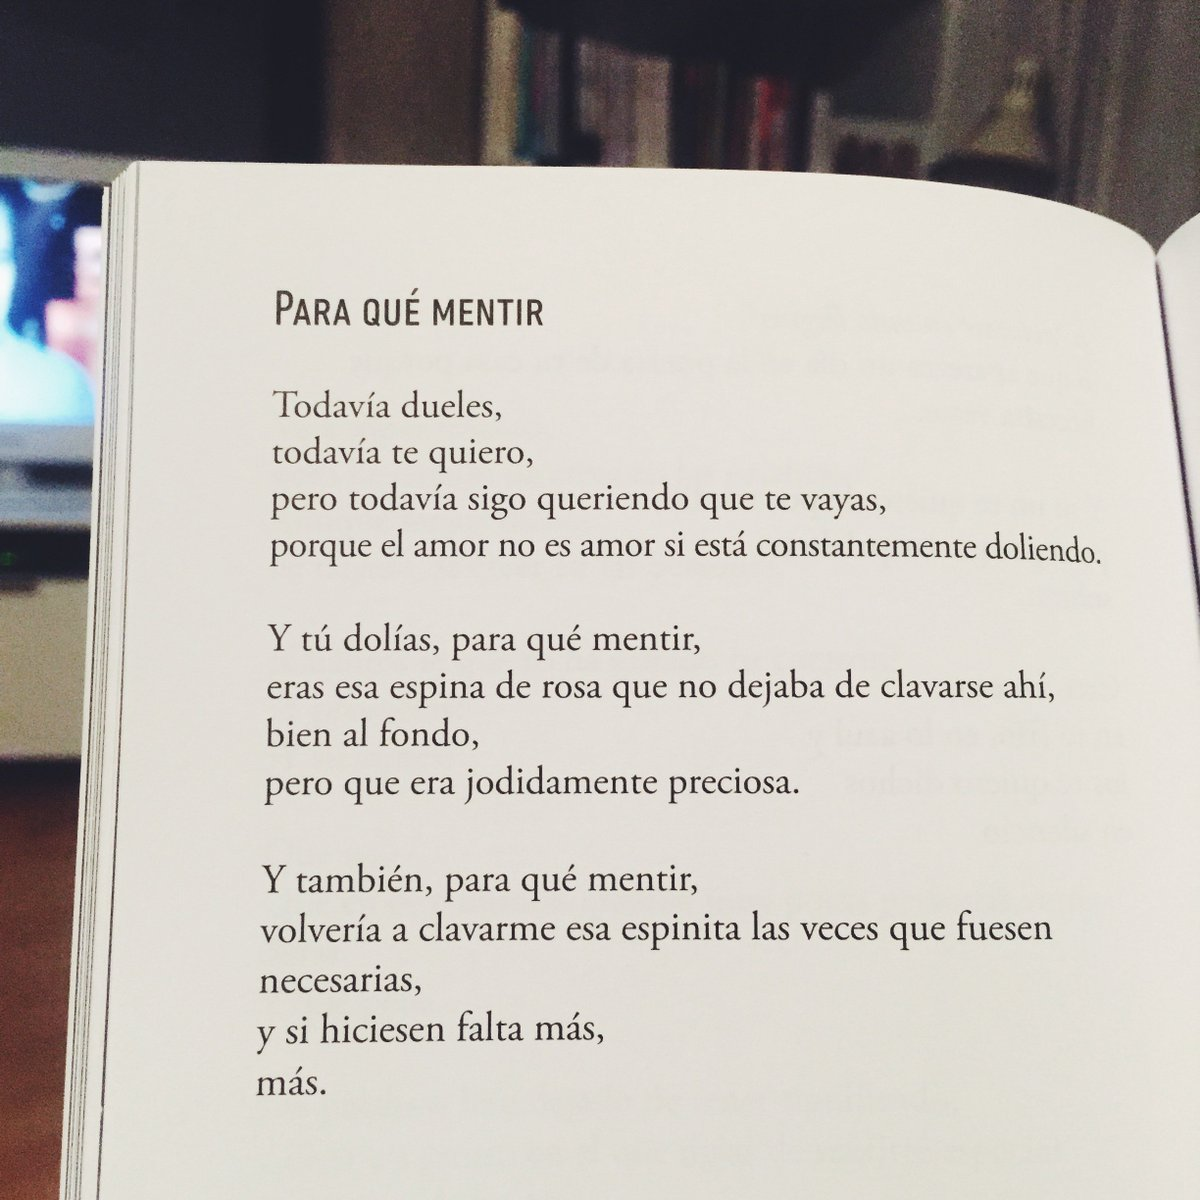 Este #poema me parece brutal! #Poesía de @invierns https://t.co/Lr1s6izieI